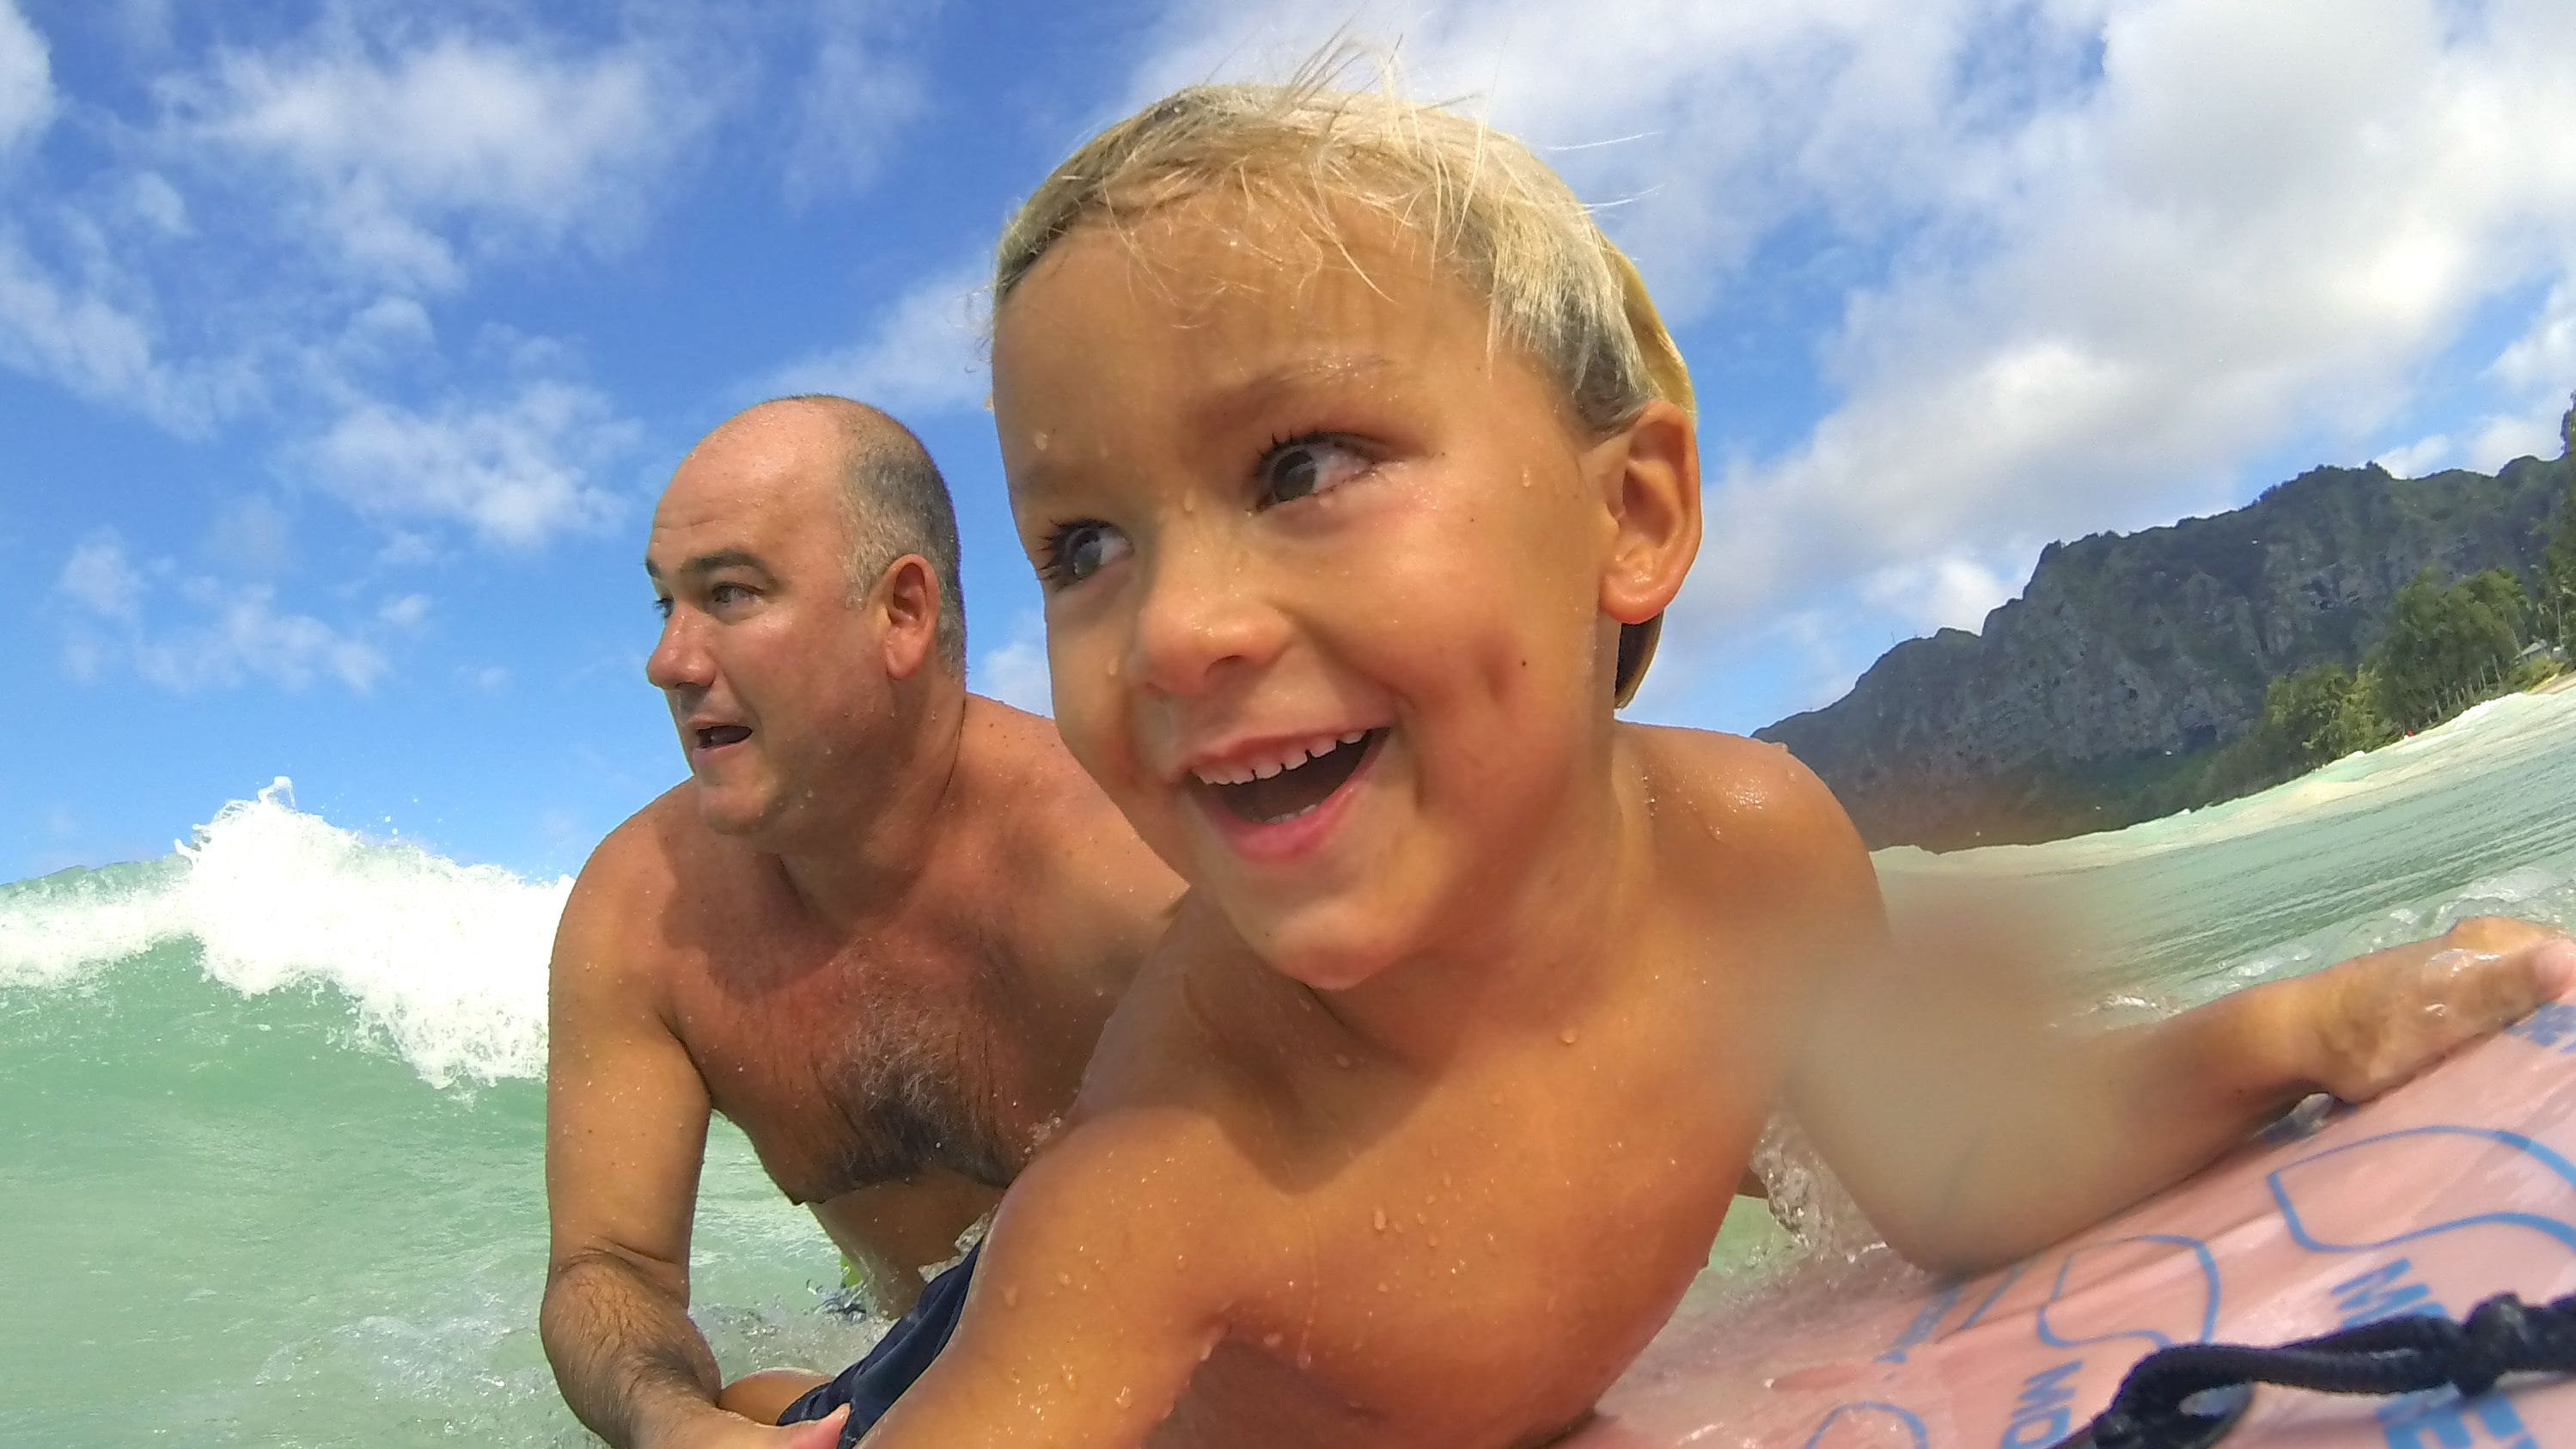 Boy and father on surf board in Kauai